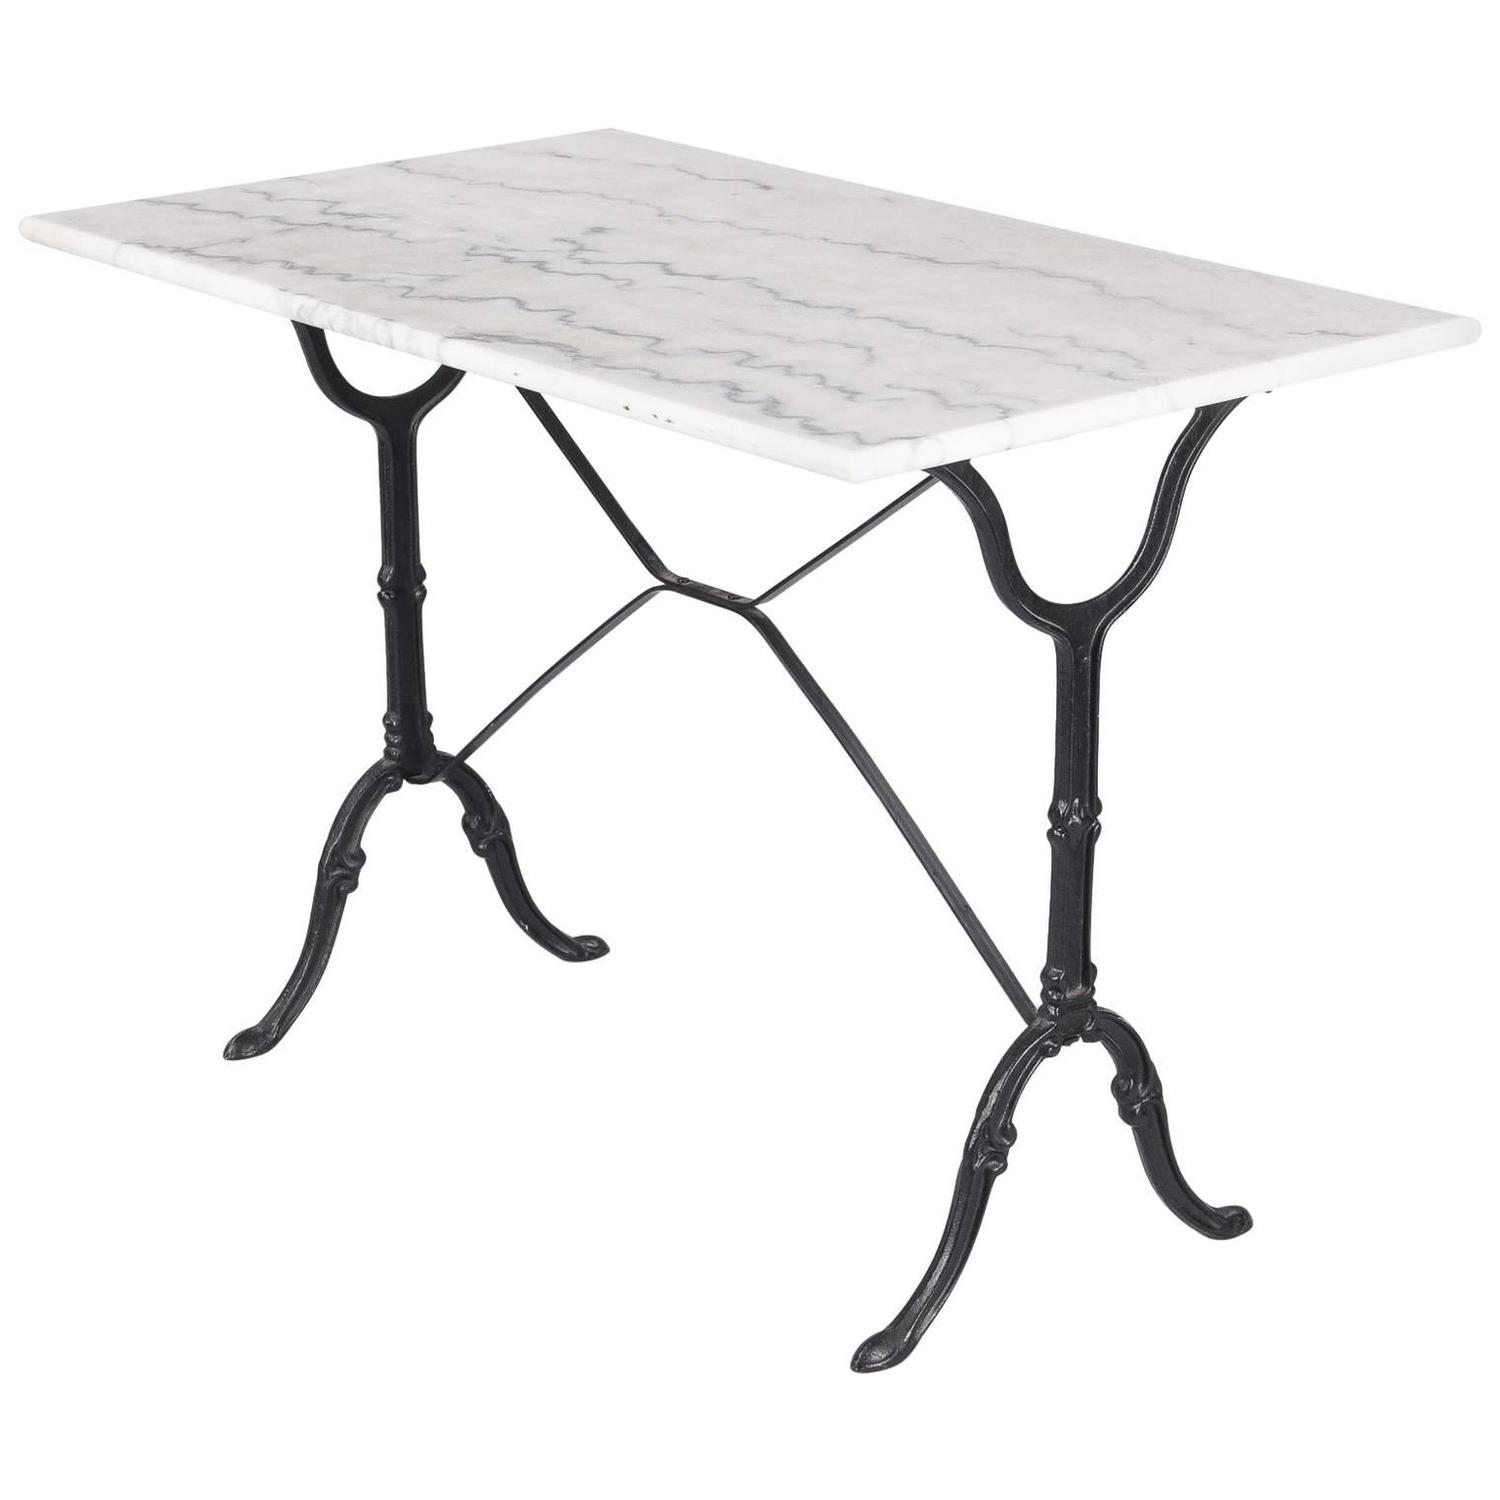 Vintage French Marble Top Iron Base Bistro Table 1970s At